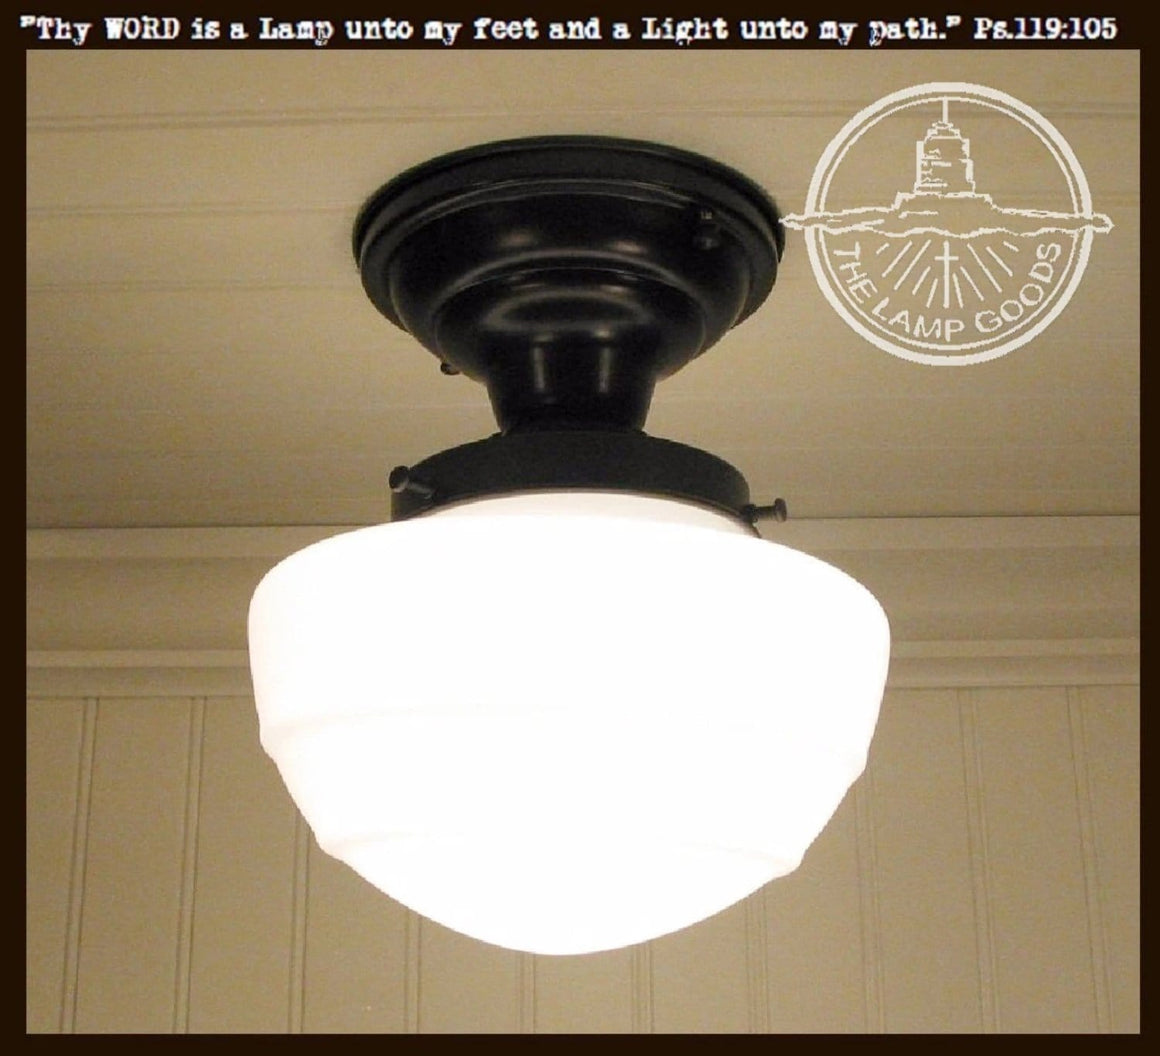 Milk Glass Ceiling Light Fixture Mushroom Style - The Lamp Goods